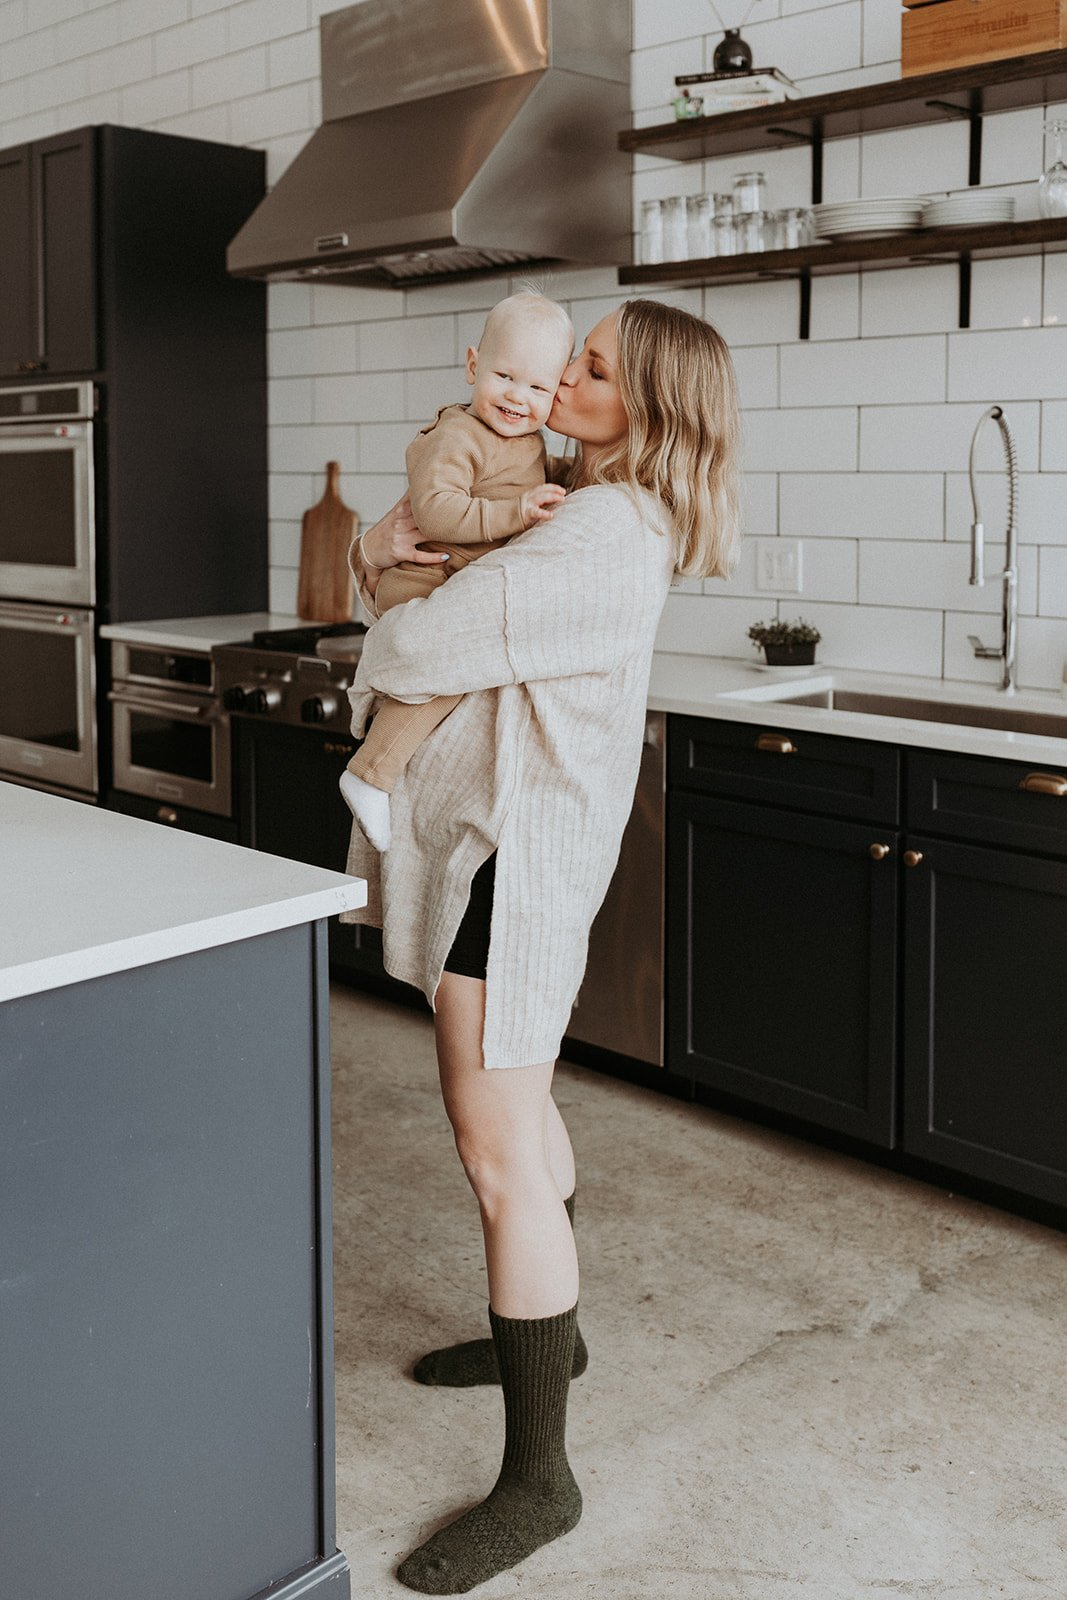 monique holding baby sidney in a kitchen